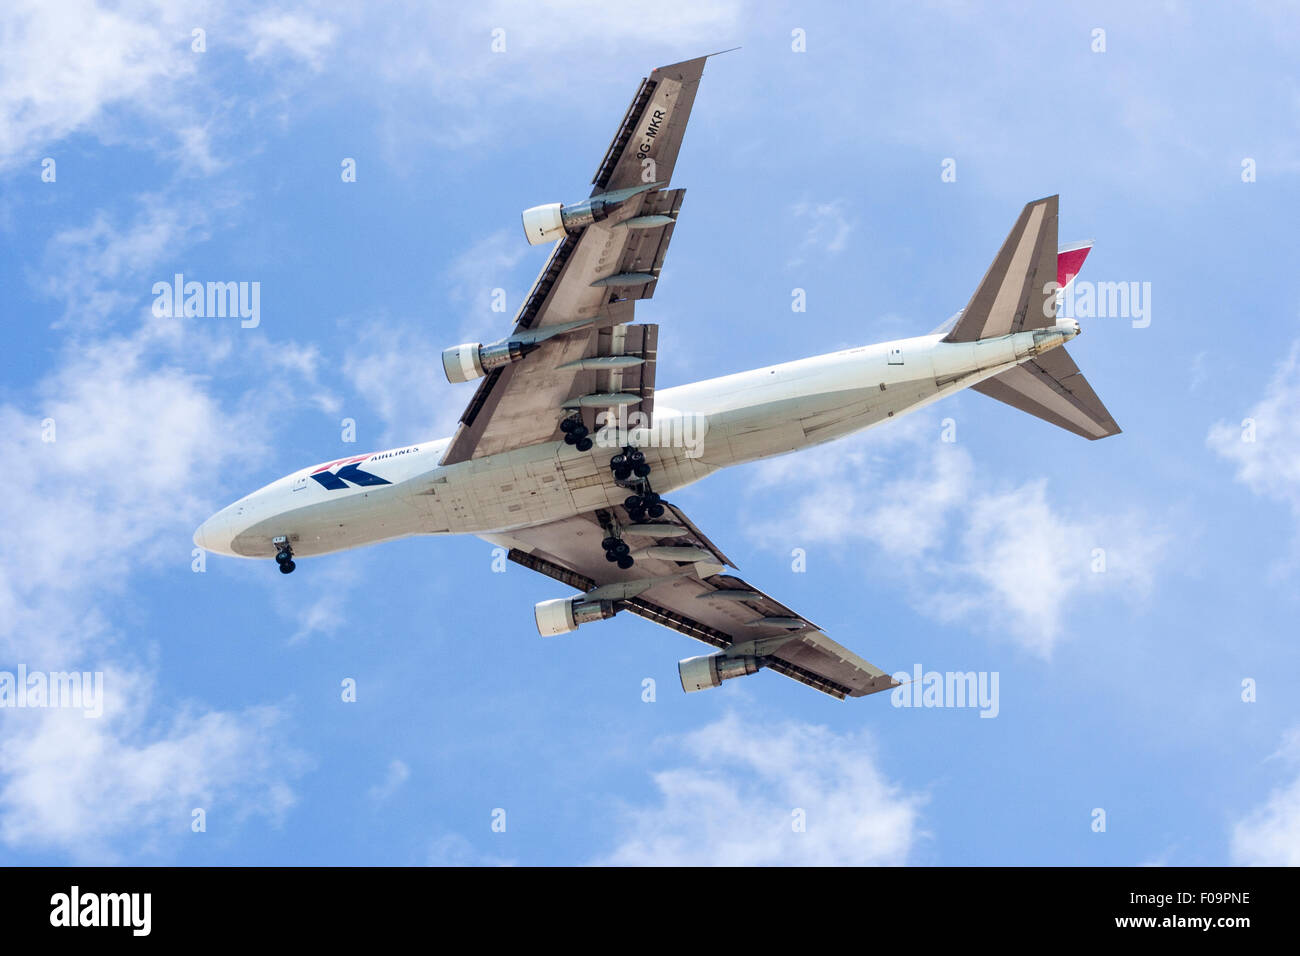 MK transport Boeing 747 flaying overhead with its wheels down while making approach to local airport. Blue and white Stock Photo